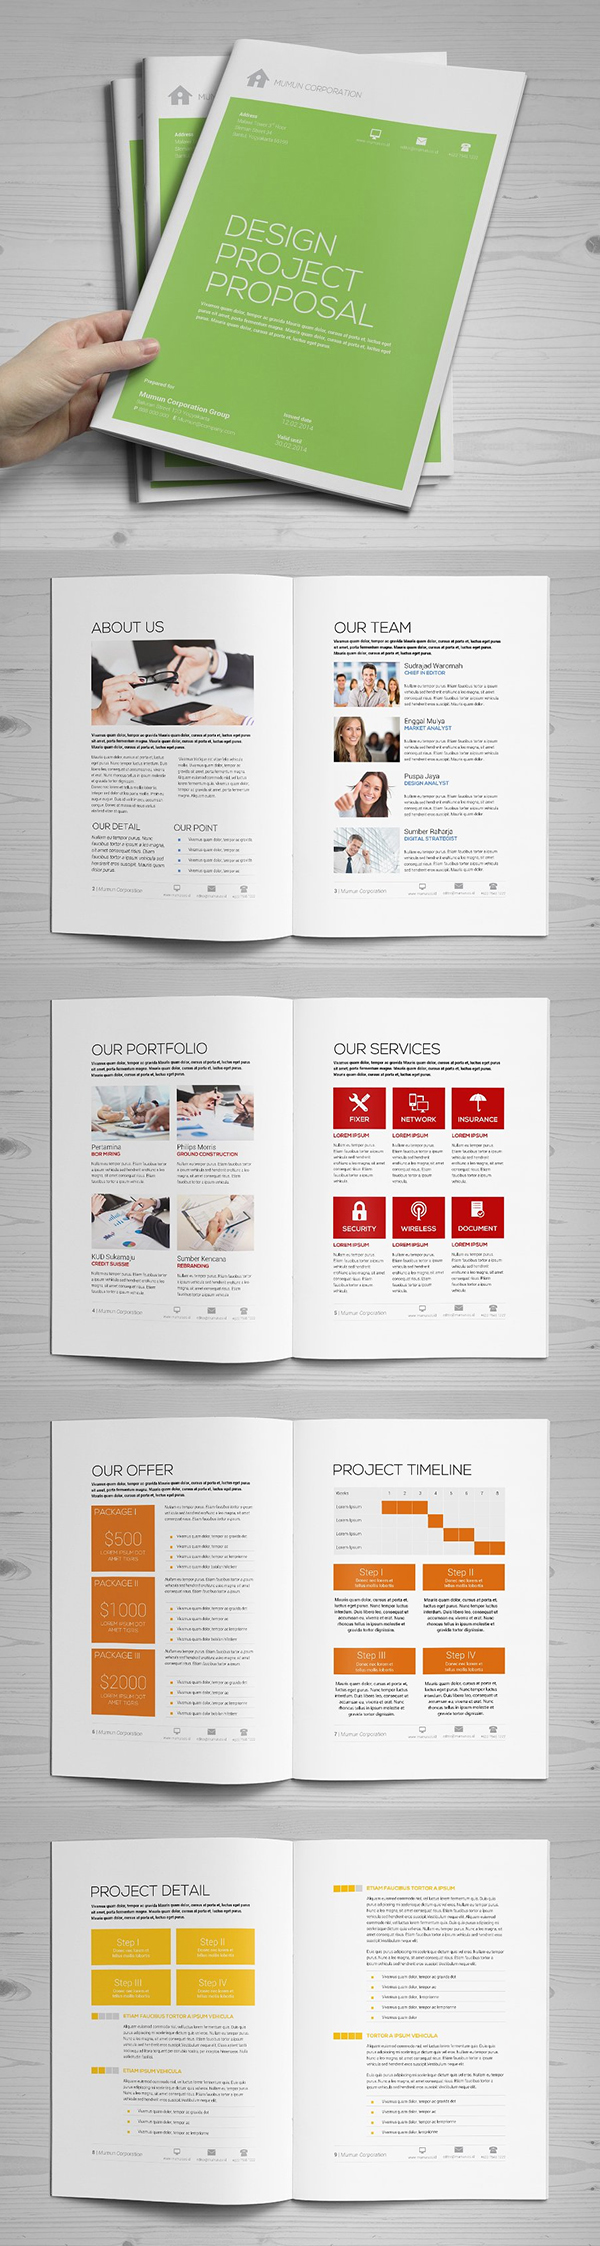 Professional Business Proposal Templates Design - 16